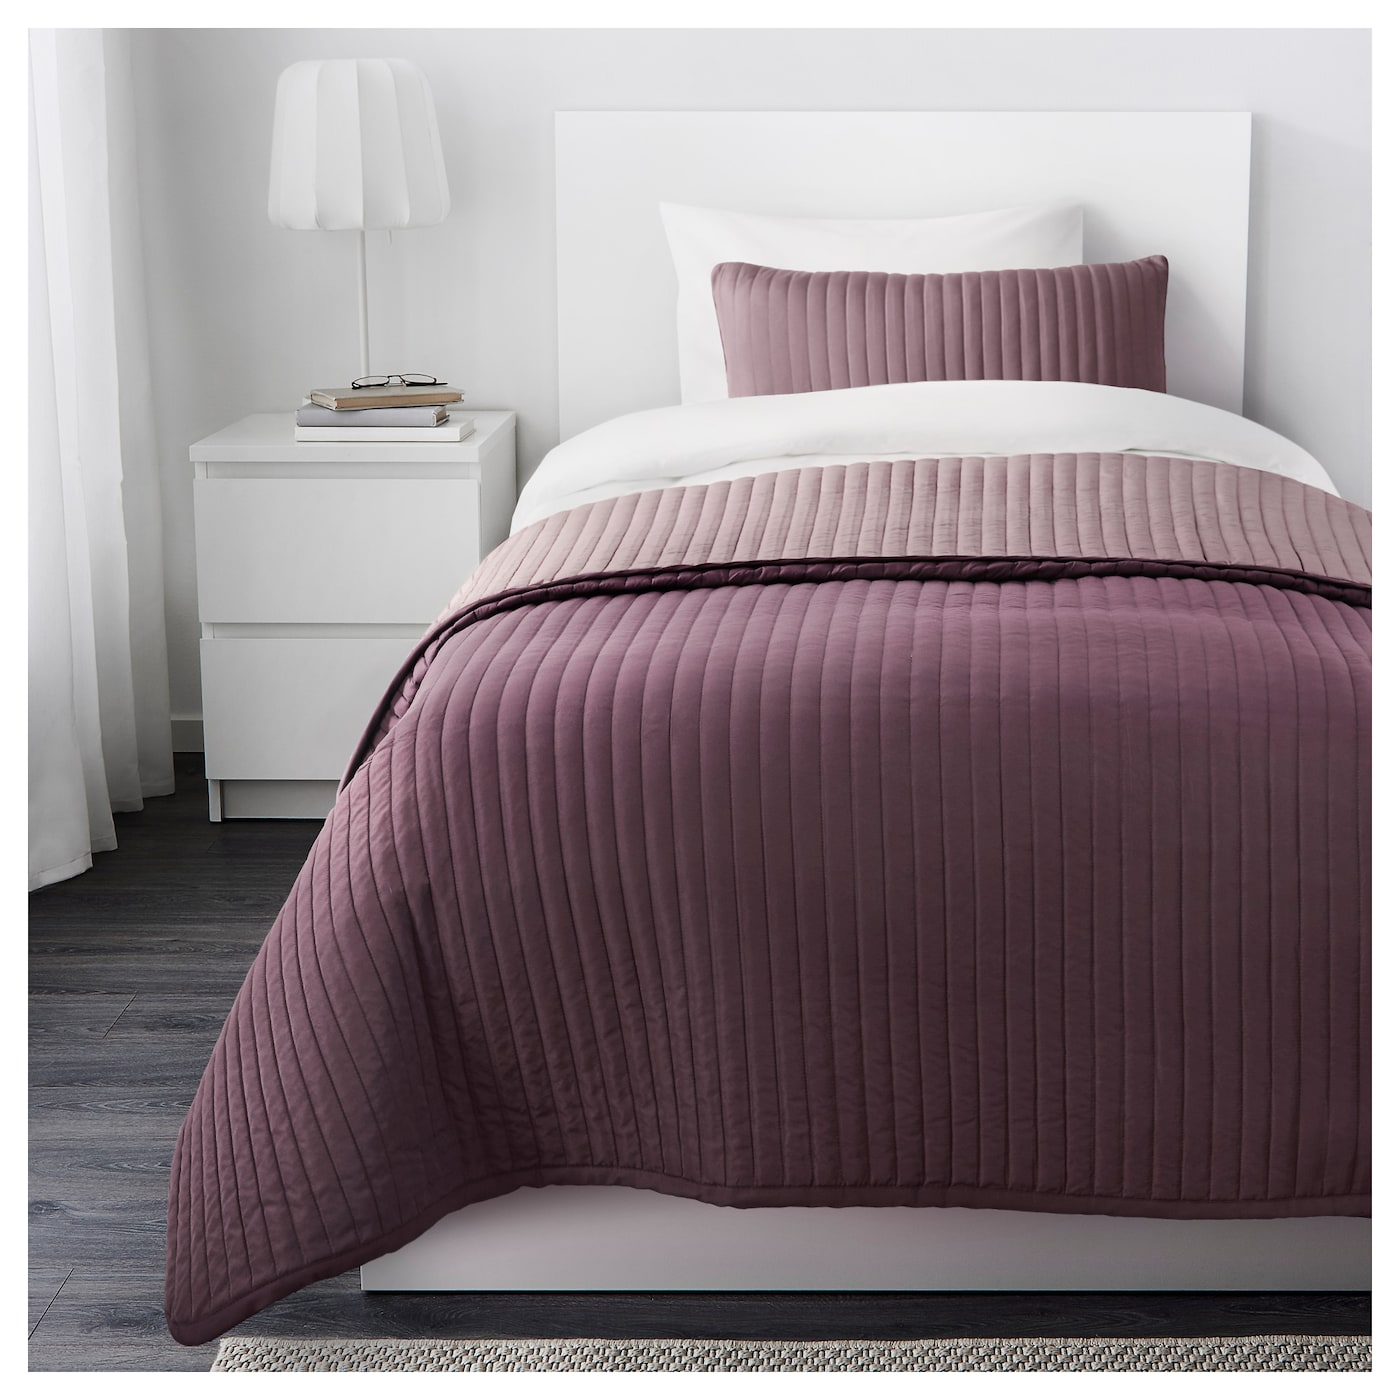 karit bedspread and cushion cover lilac 180x280 40x65 cm ikea. Black Bedroom Furniture Sets. Home Design Ideas